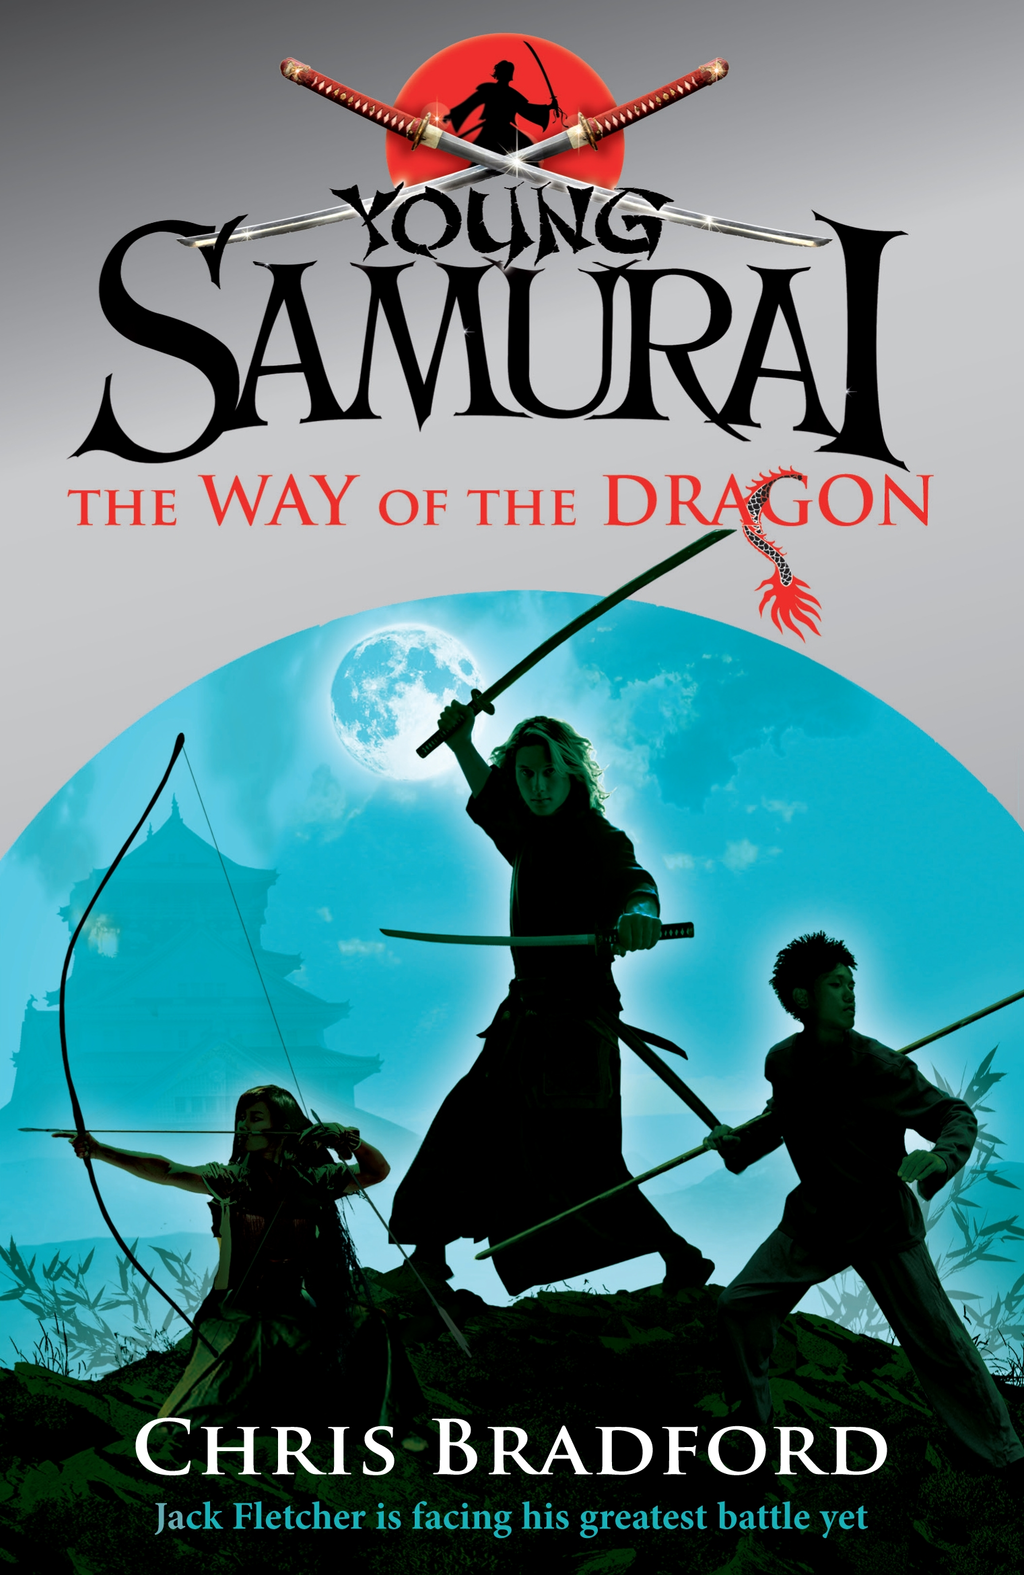 Young Samurai: The Way of the Dragon The Way of the Dragon